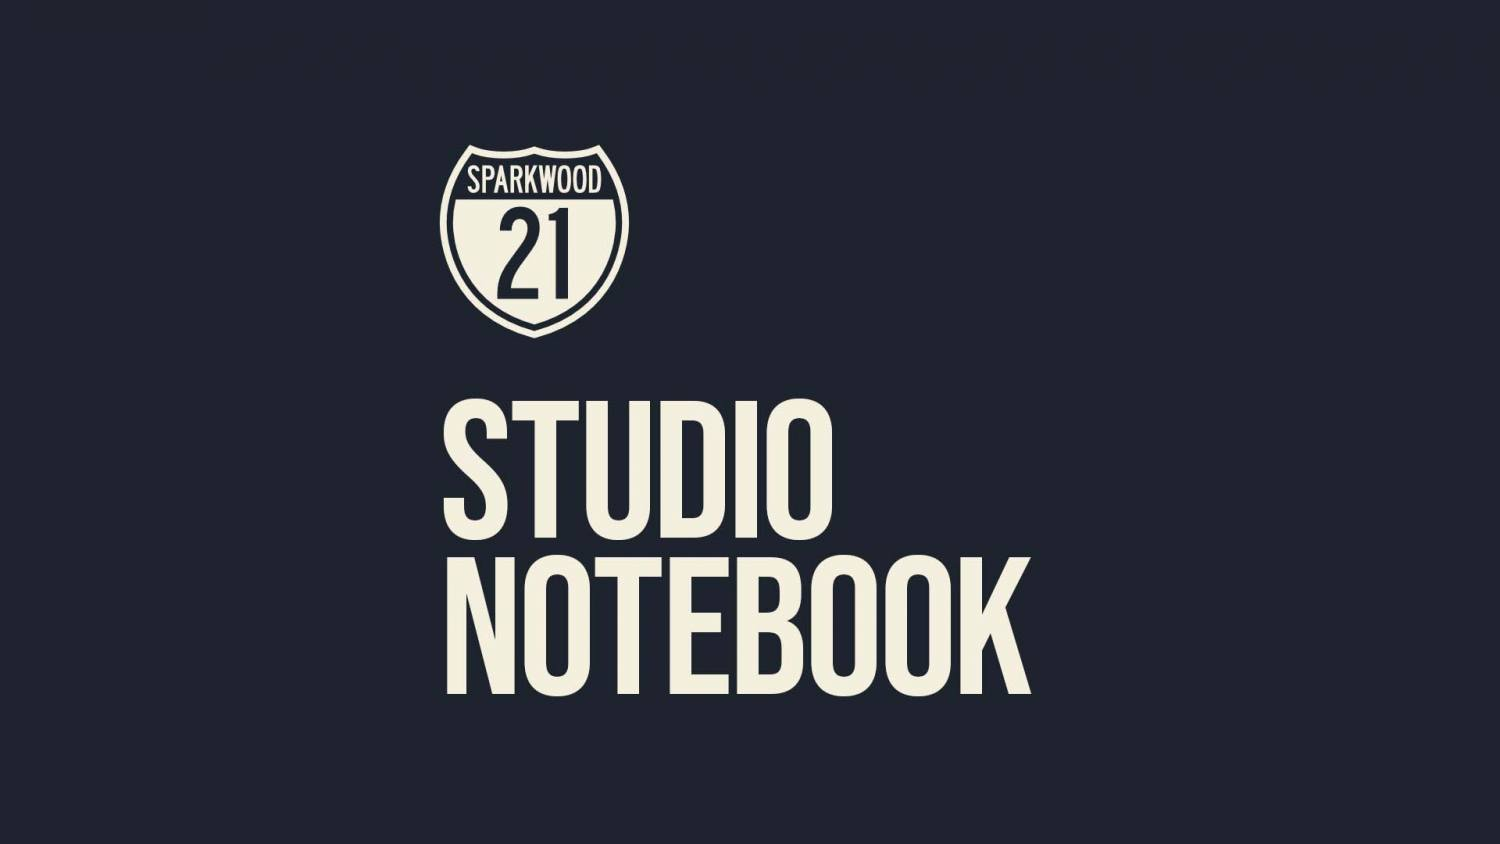 The Sparkwood and 21 Shield logo with the words STUDIO NOTEBOOK underneath